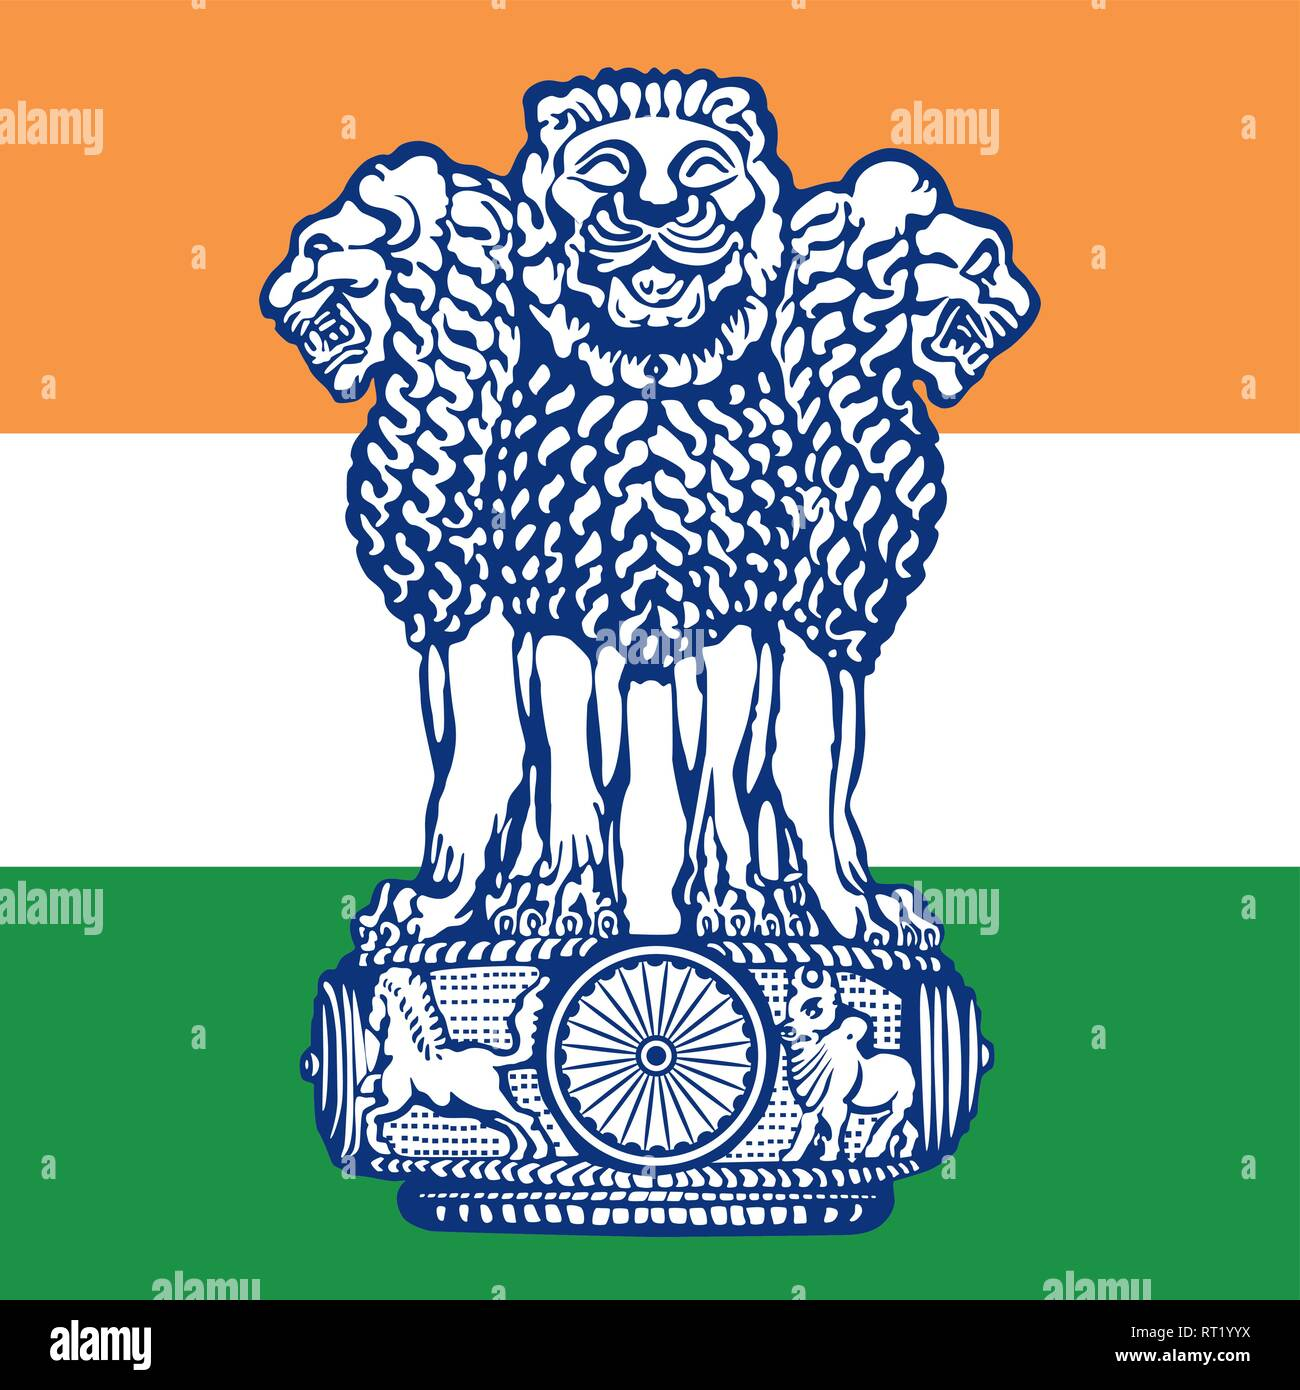 India official coat of arms on the national flag - Stock Vector